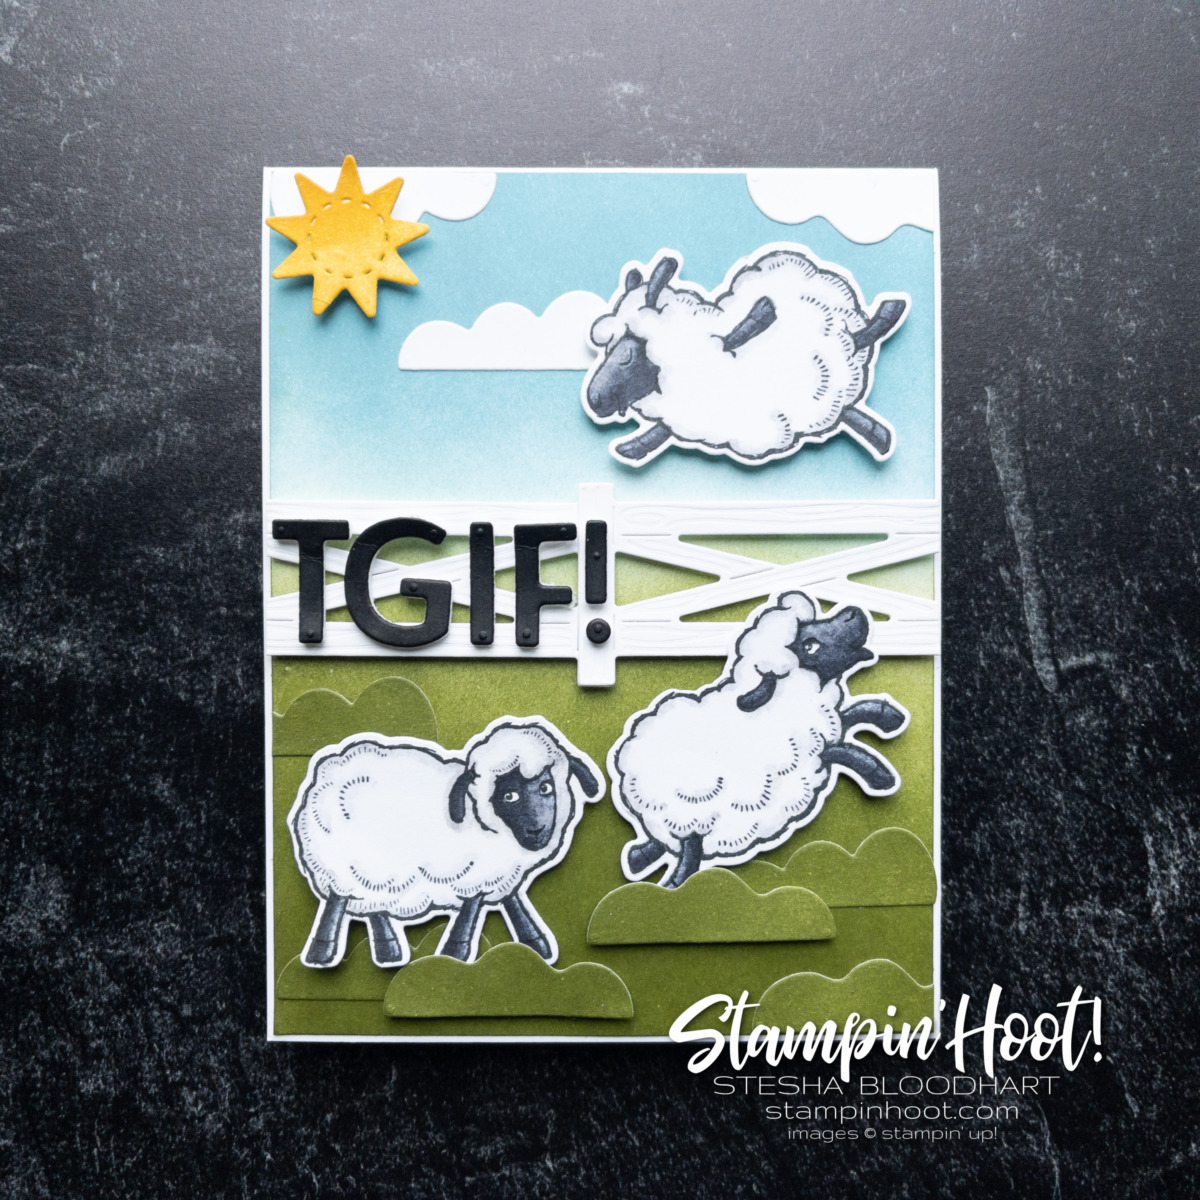 TGIF Card created with Counting Sheep and Sheep Dies from Stampin' Up! Created by Stesha Bloodhart, Stampin' Hoot!